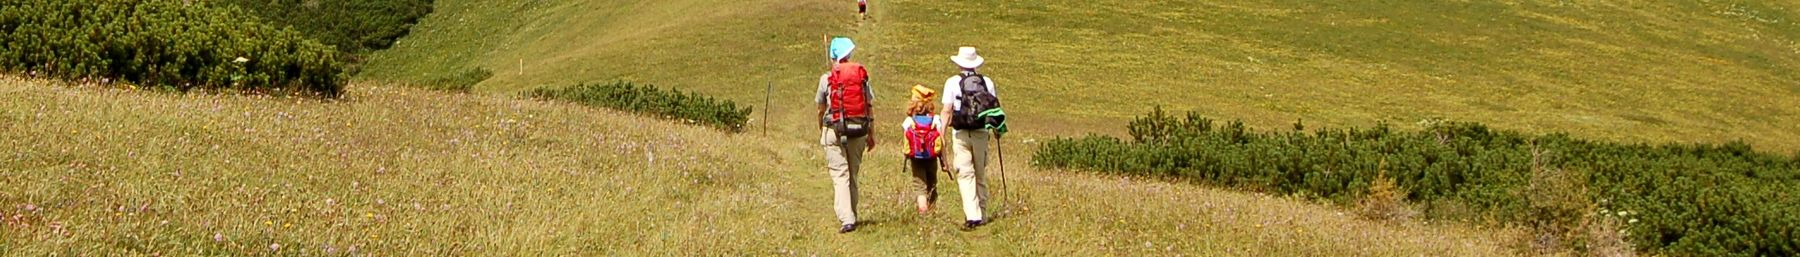 Hiking page banner.jpg